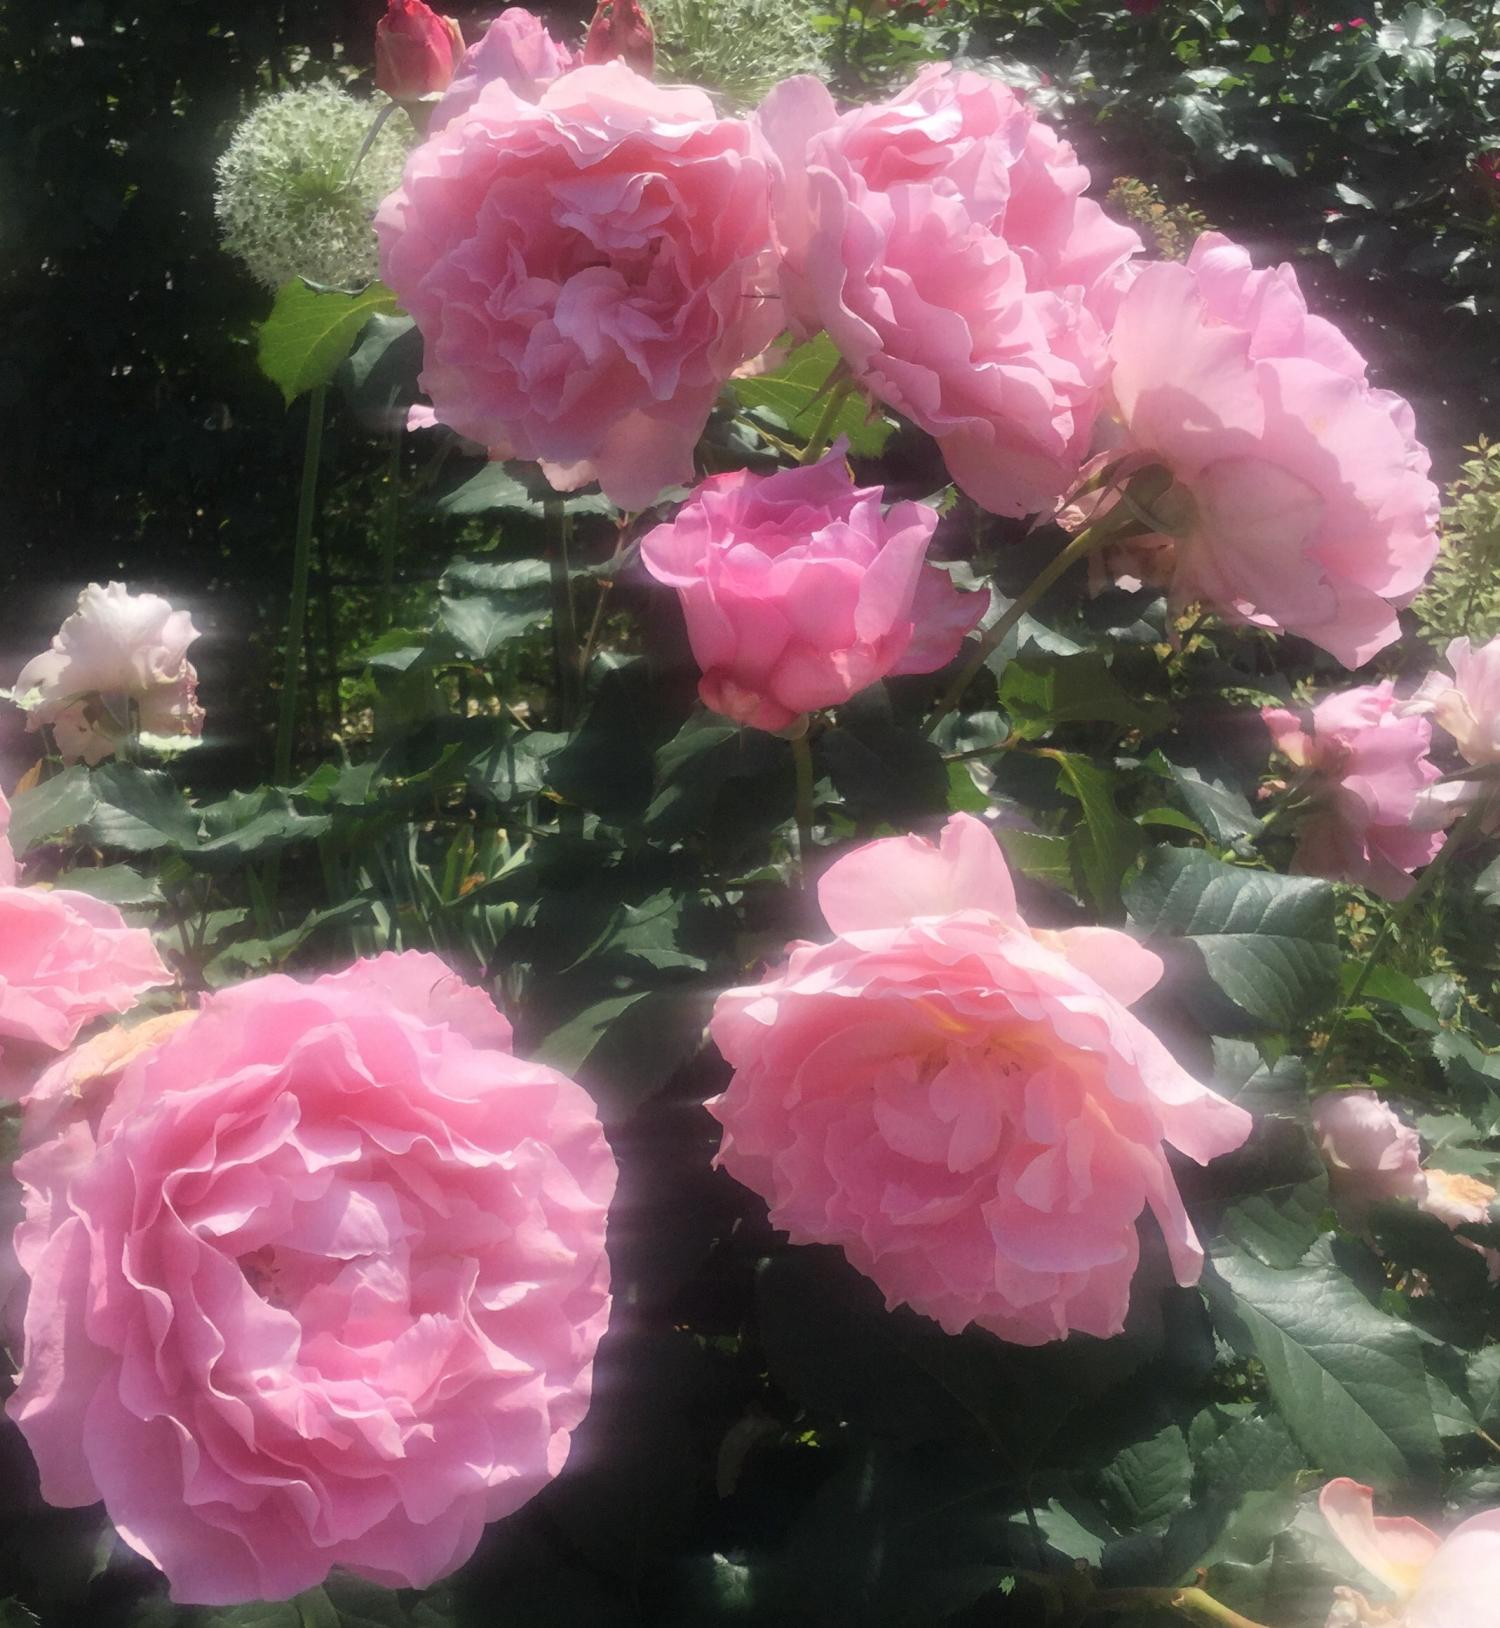 Rose image which colors incense Rose garden of the rose four seasons of fascination